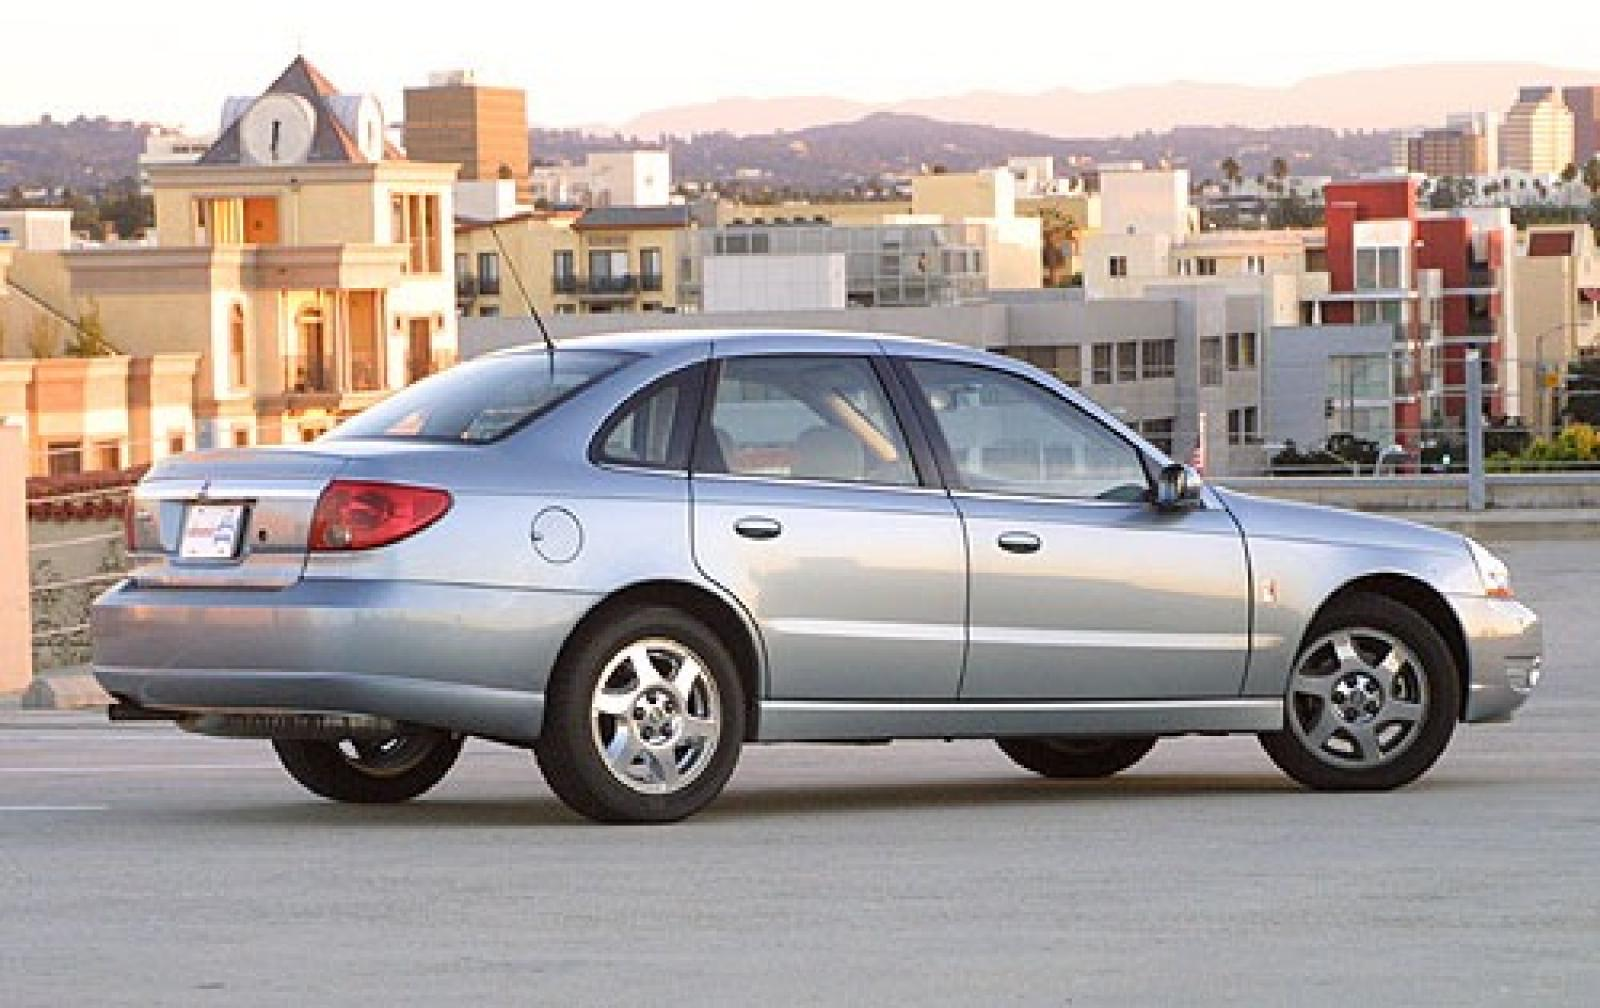 2005 saturn l300 information and photos zombiedrive 800 1024 1280 1600 origin 2005 saturn l300 vanachro Images